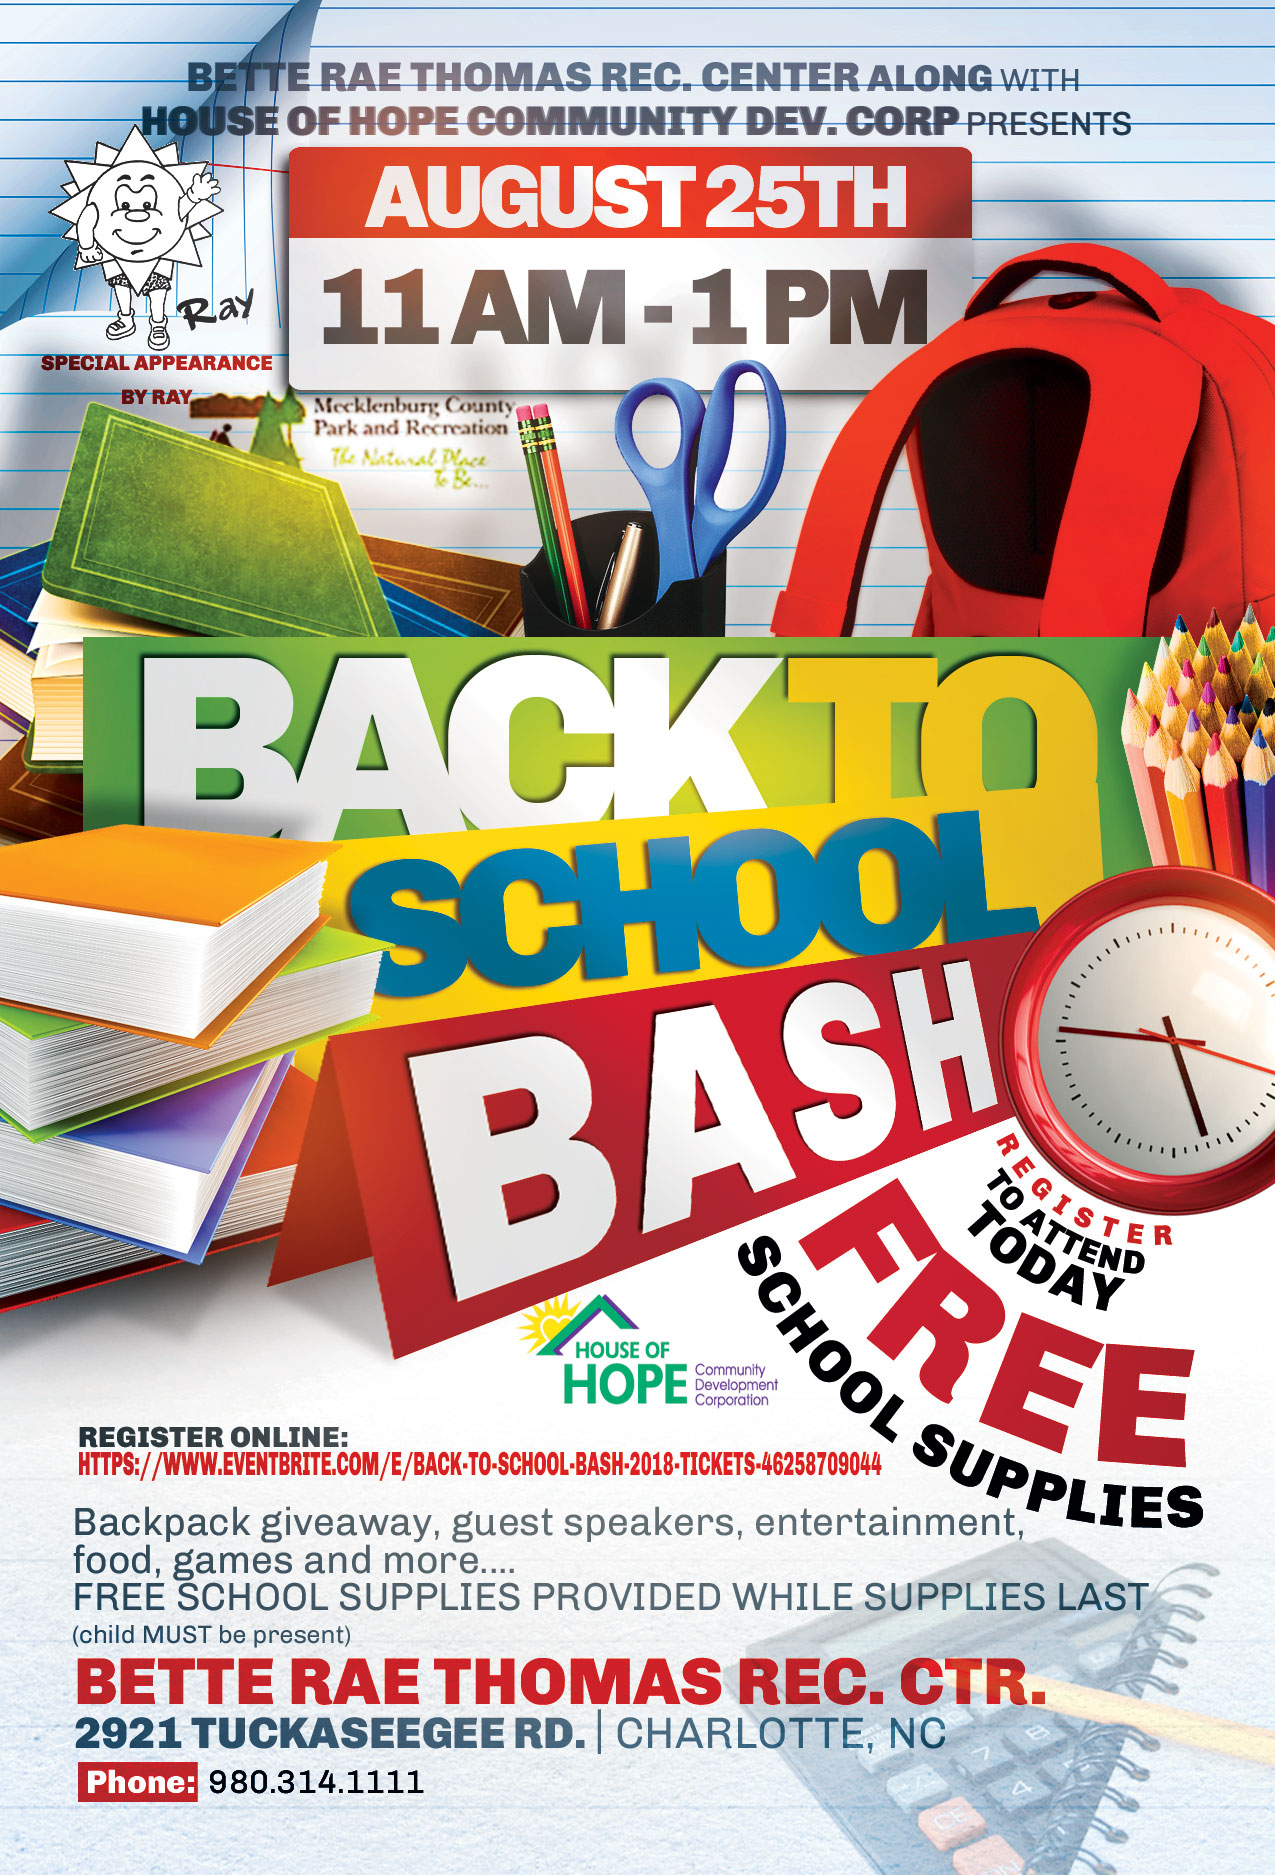 Back to School Bash flyer image